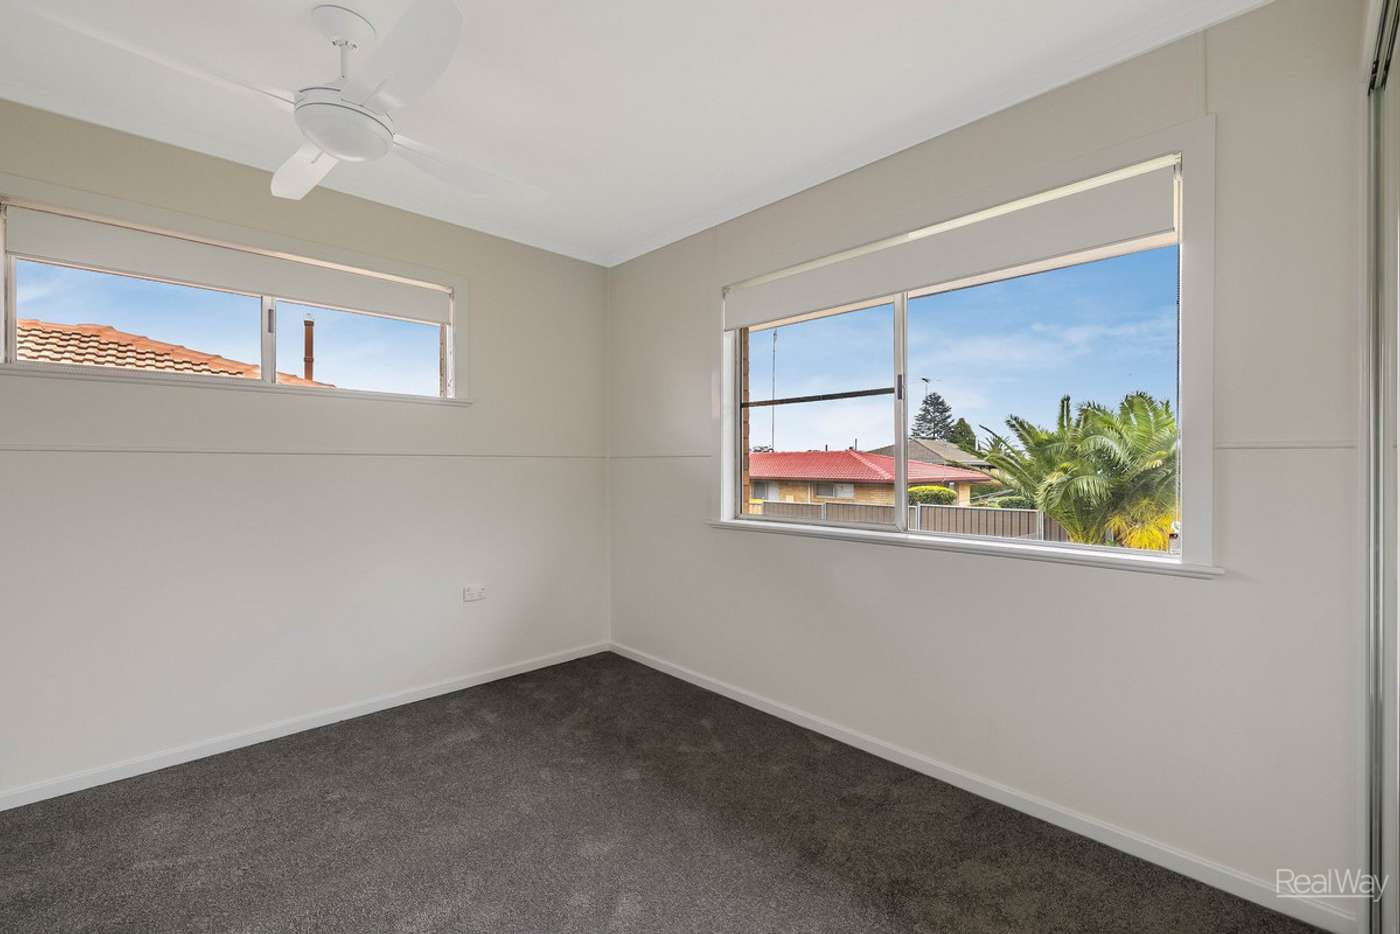 Sixth view of Homely house listing, 53 Rowbotham Street, Rangeville QLD 4350